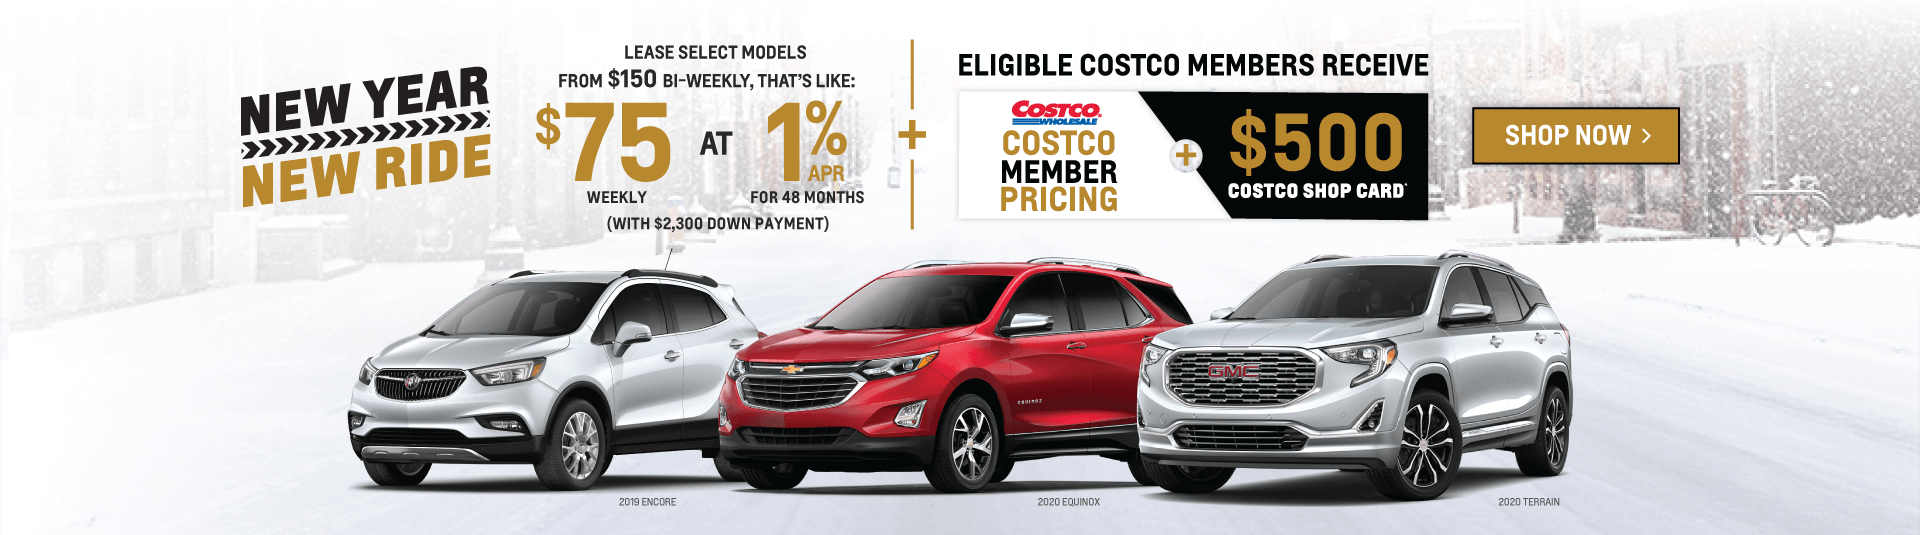 Chevrolet, Buick, GMC SUV New Year, New Ride Sale Event in Etobicoke